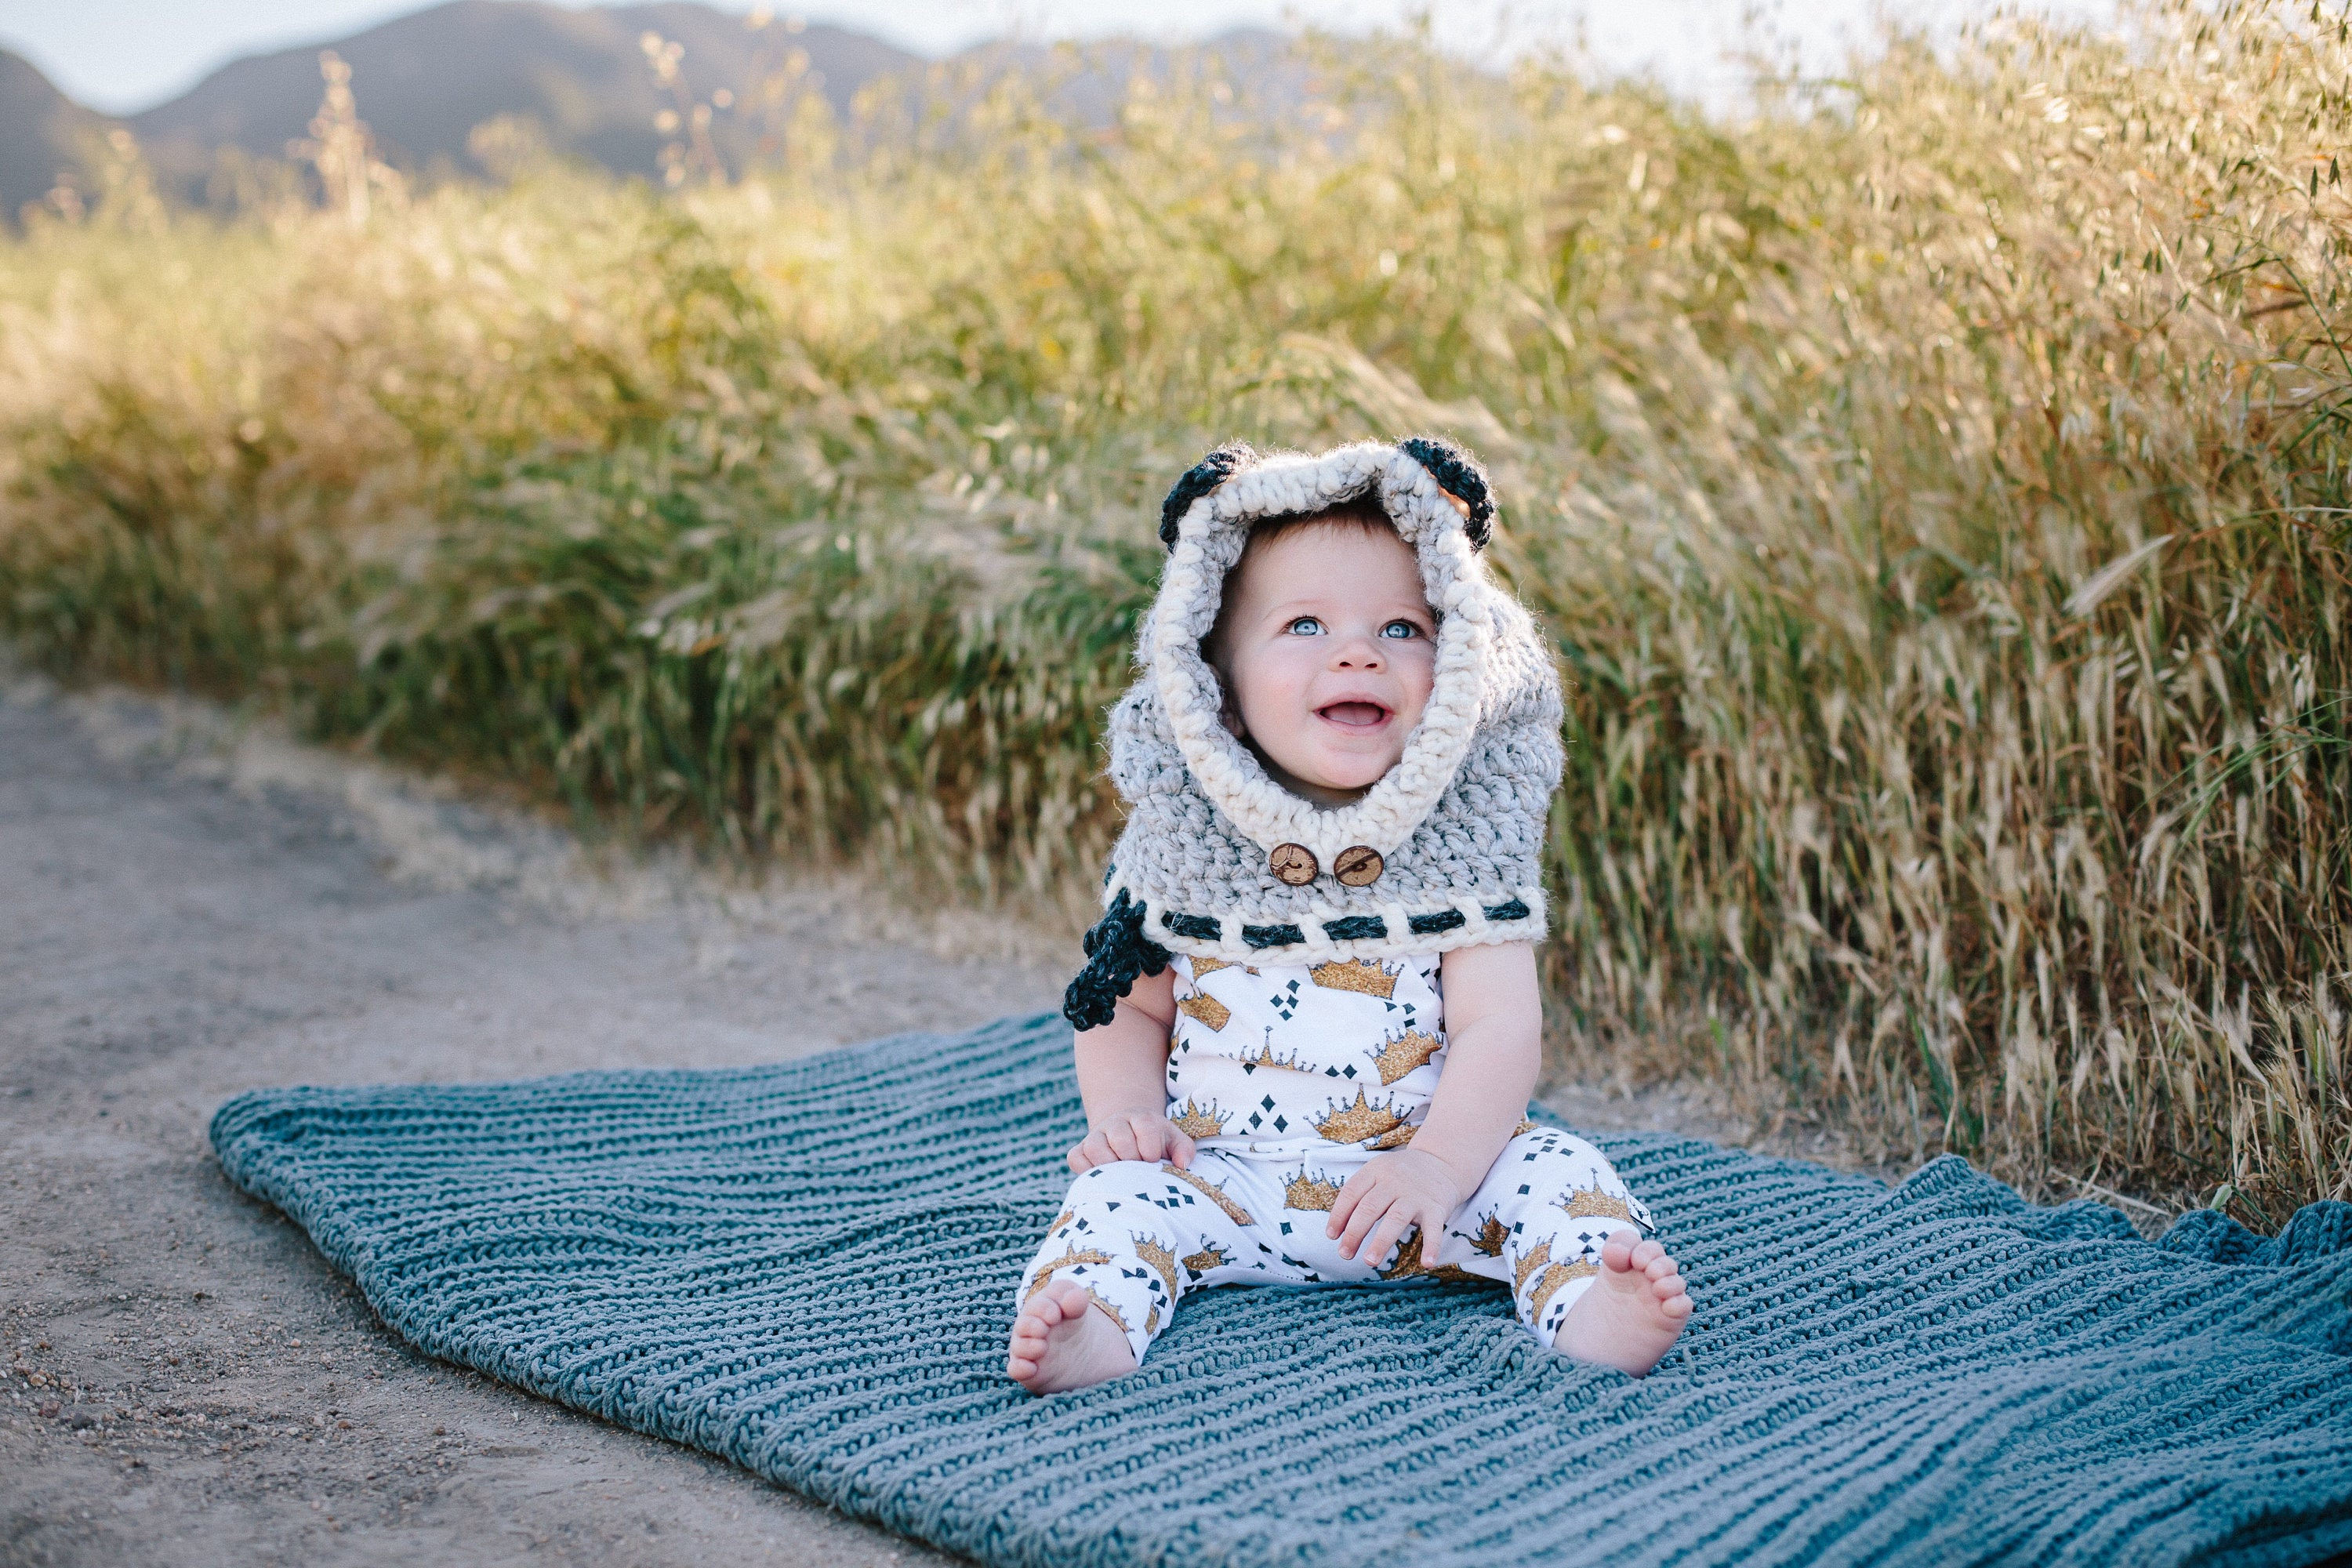 Where the Wild Things Are Crown Pattern Romper/Dress/Hoodie, Little Boy Wearing Romper Sitting On A Blanket